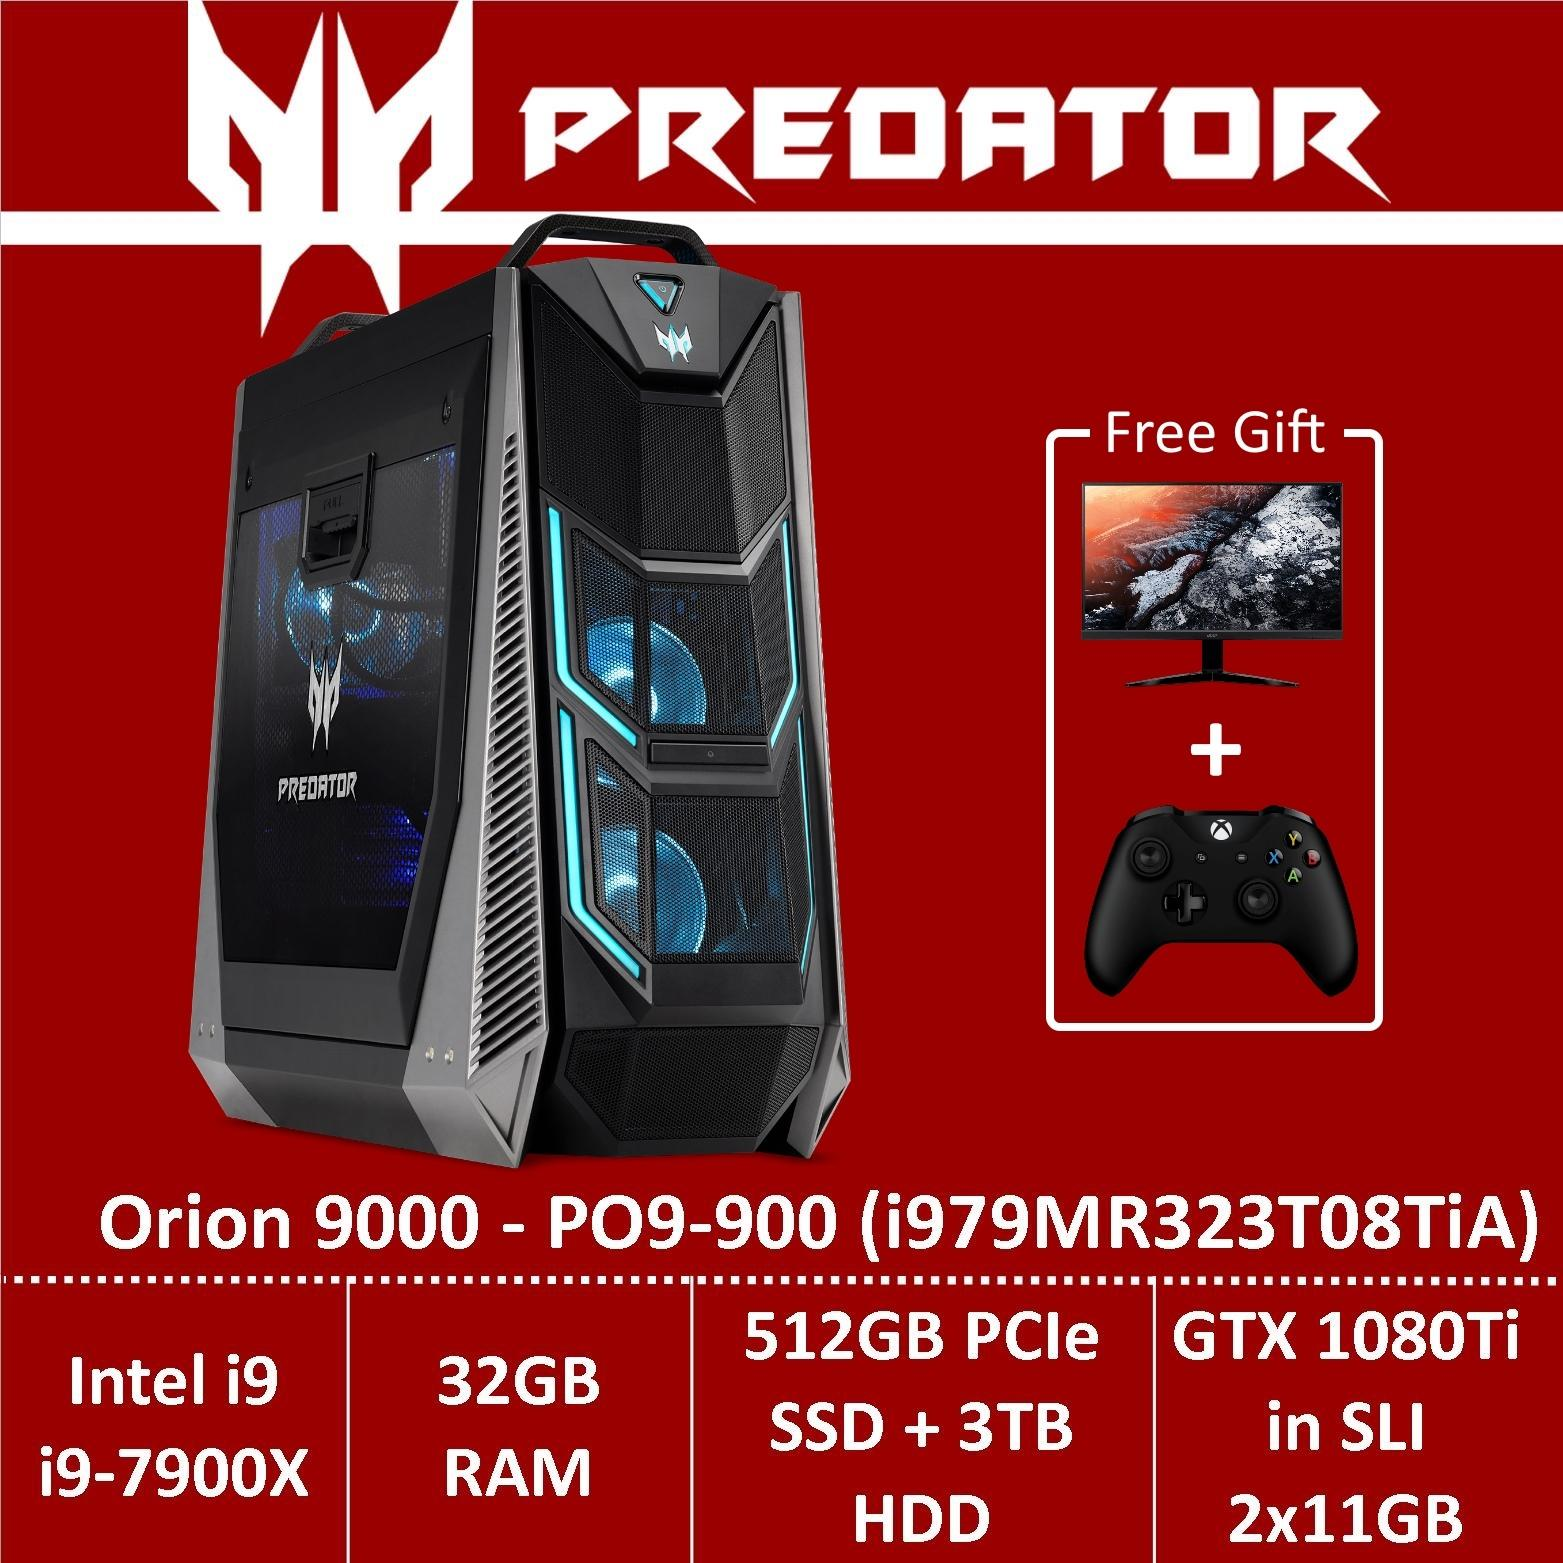 Predator Orion 9000 PO9-900 (i979MR323T08TiA) Gaming Desktop - Intel Core i9-7900X processor with NVIDIA GeForce GTX 1080Ti in SLI -...